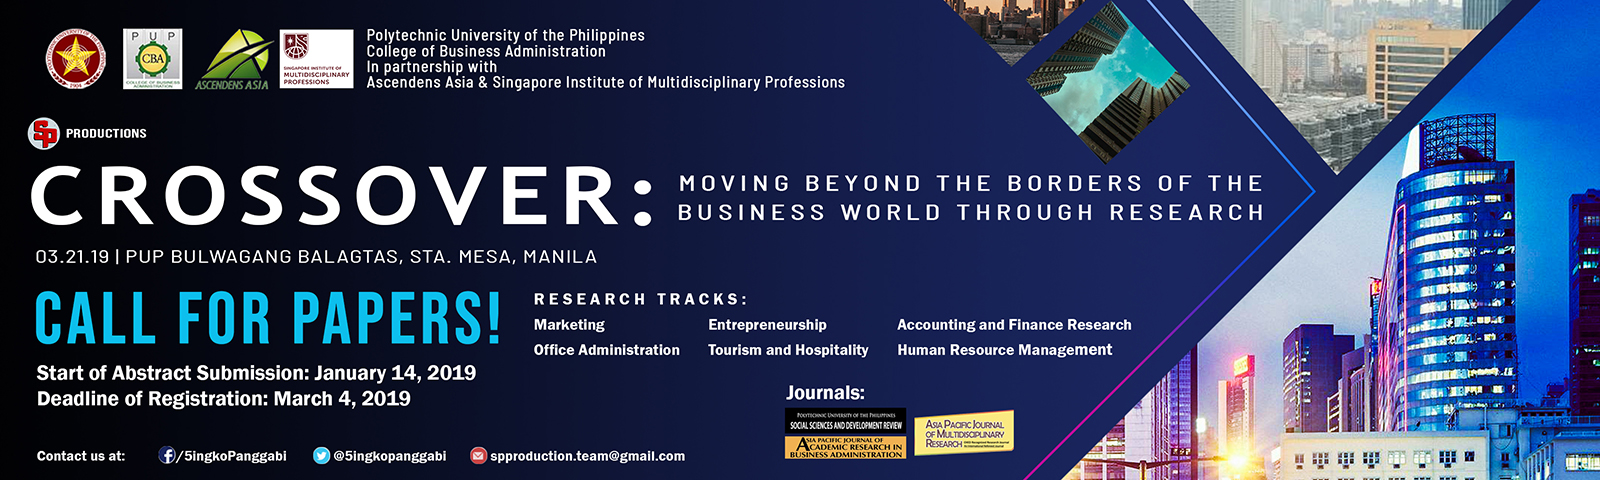 Crossover: Moving Beyond the Borders of the Business World through Research